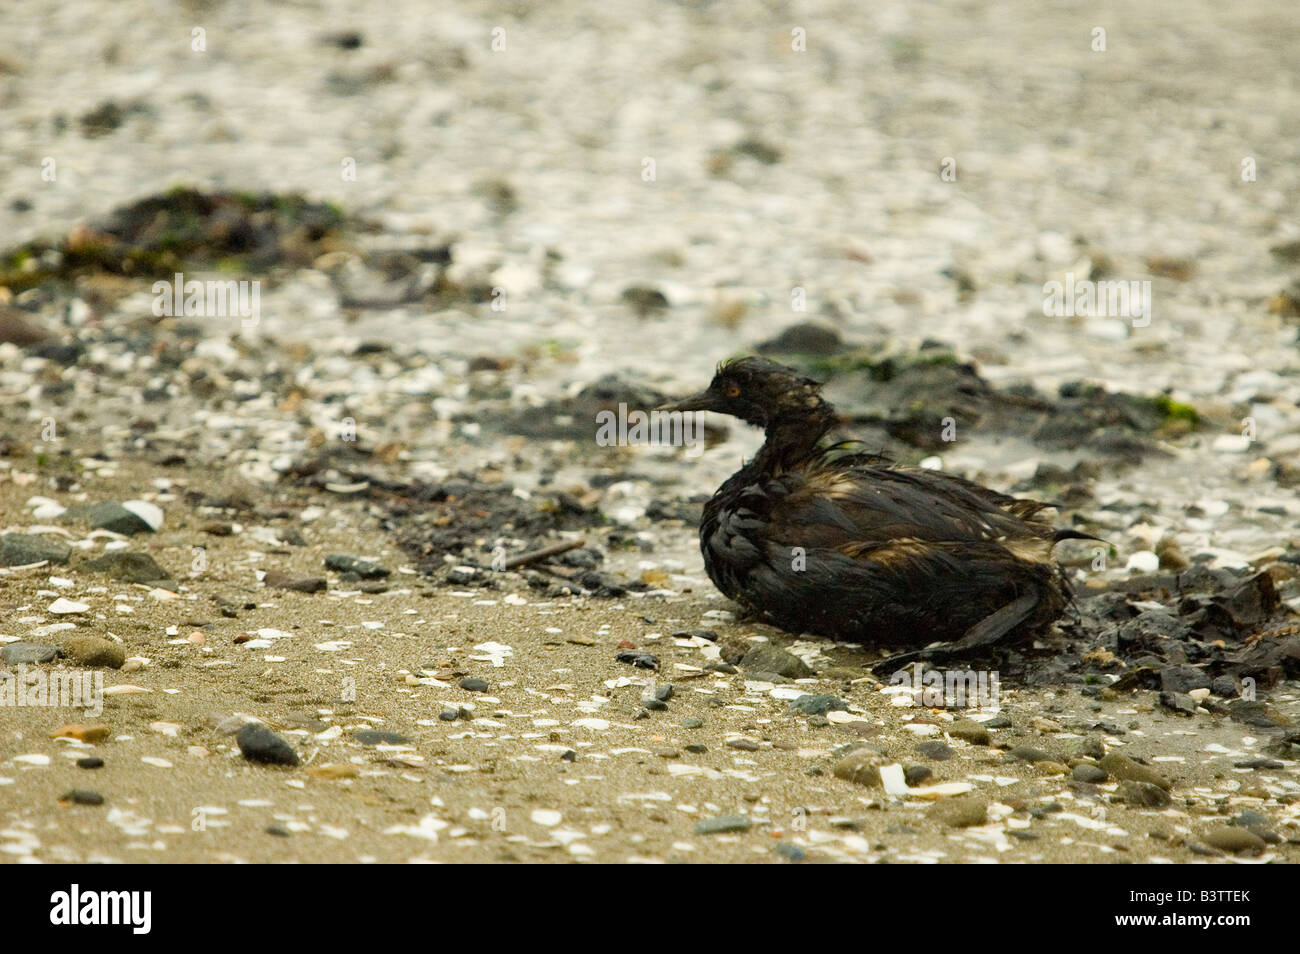 Oil-soaked eared grebe (Podiceps nigricollis), a victim of the Cosco Busan oil spill in San Francisco Bay, November - Stock Image